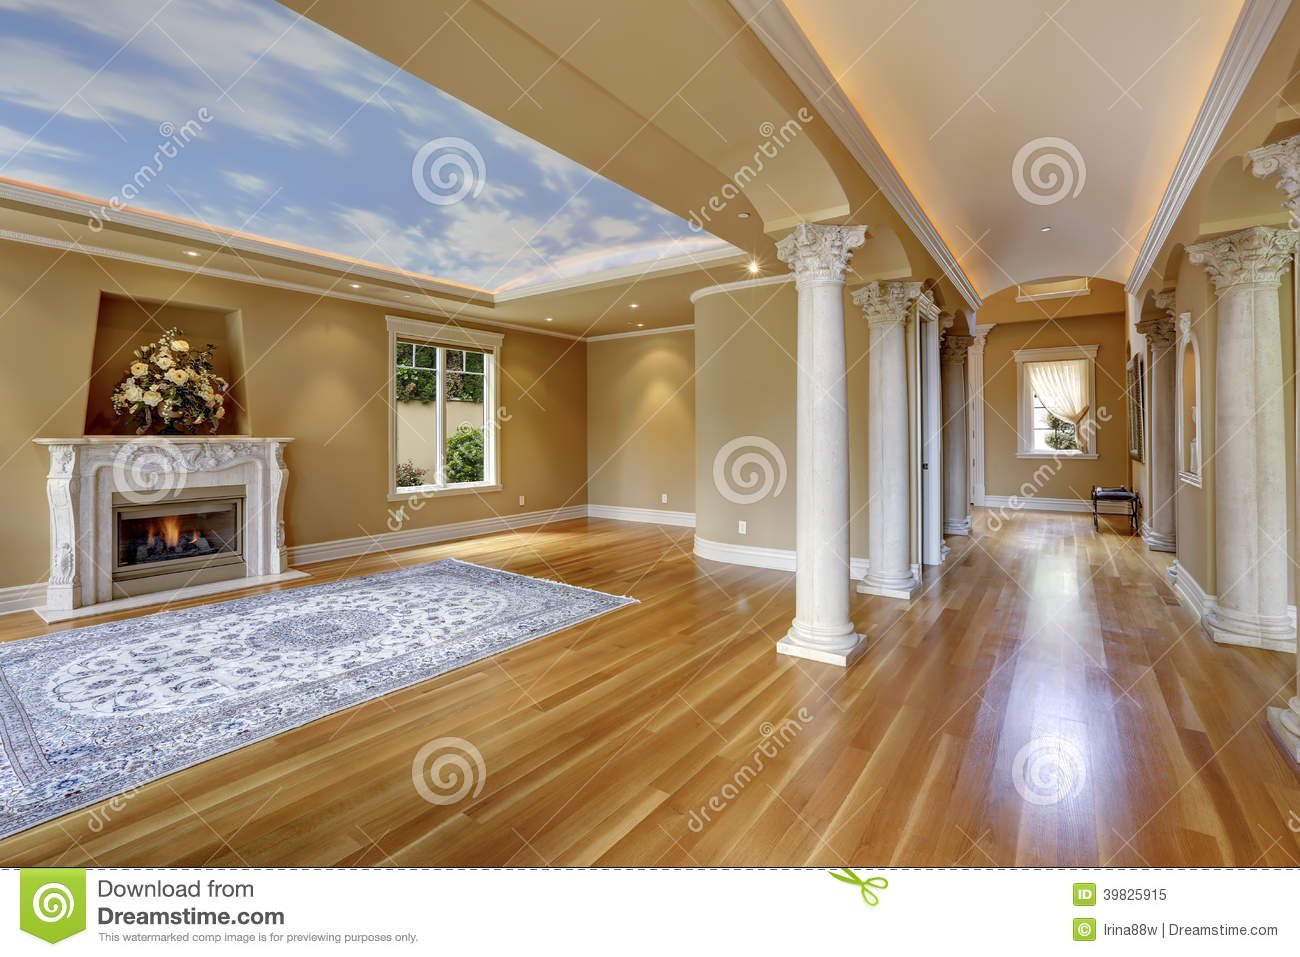 Luxury house interior living room with column stock image for Columns in houses interior